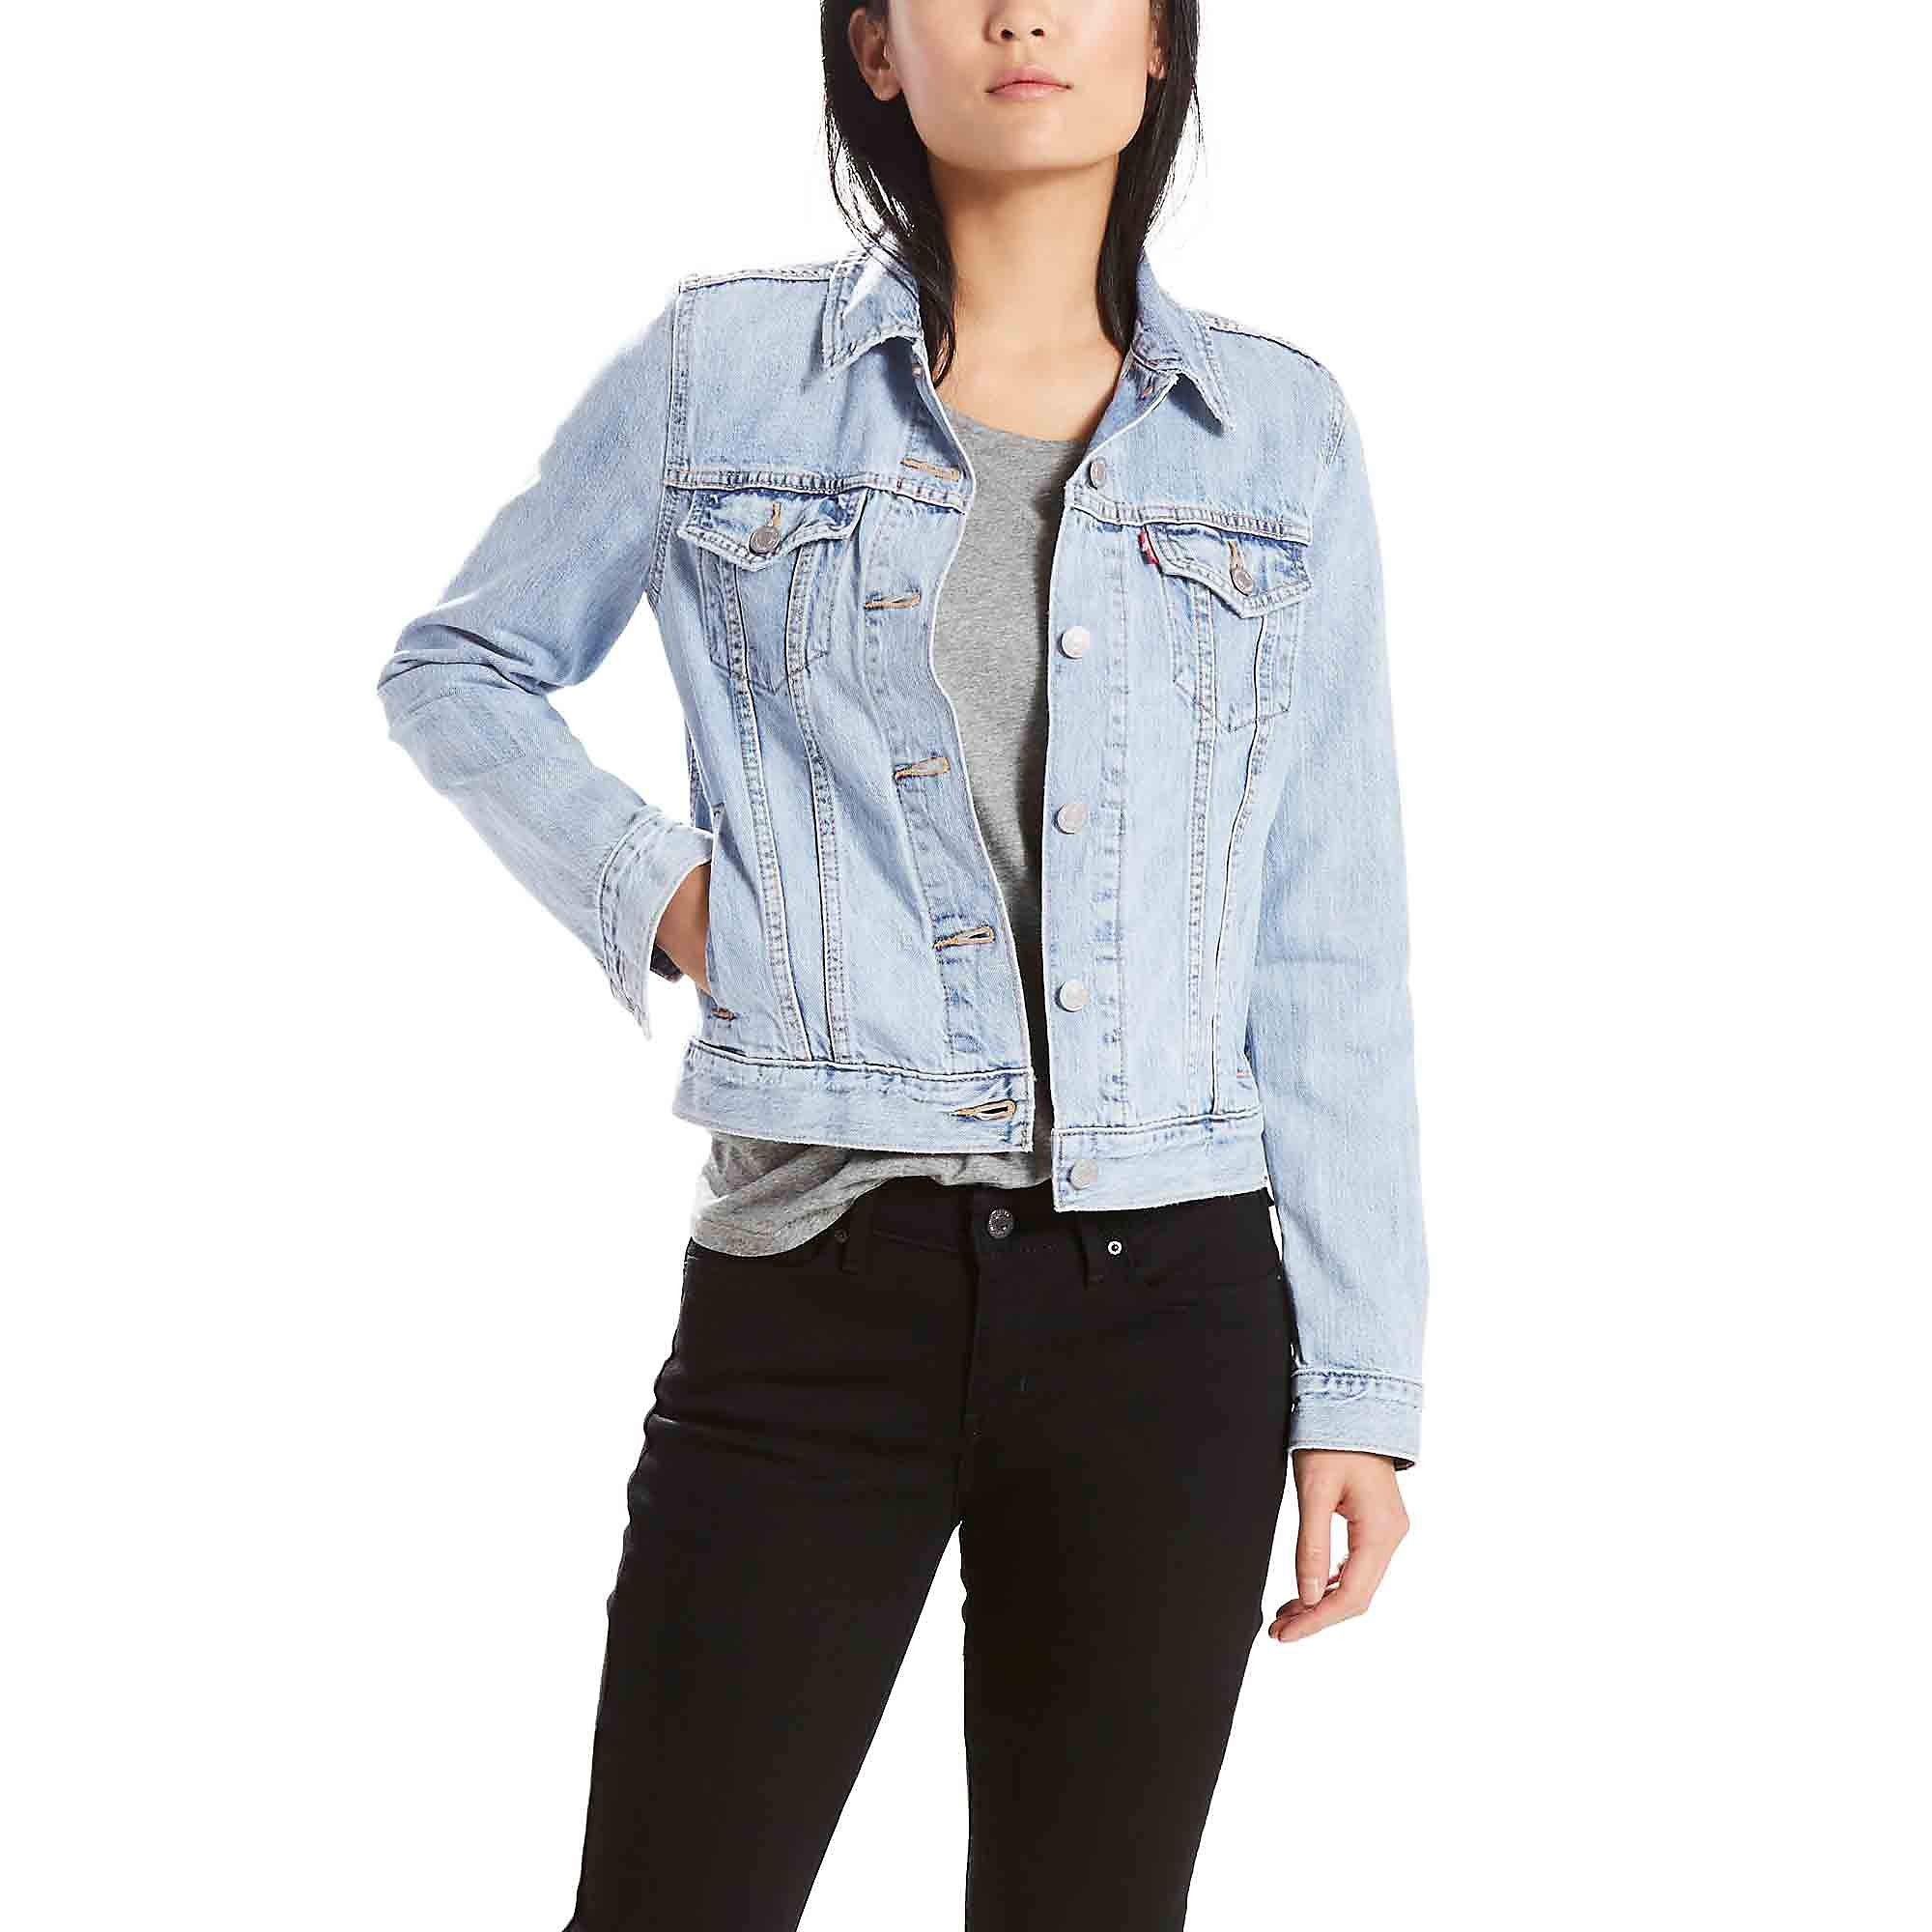 Levi's Original Trucker Jacket - Women's - All Yours M by Levi's